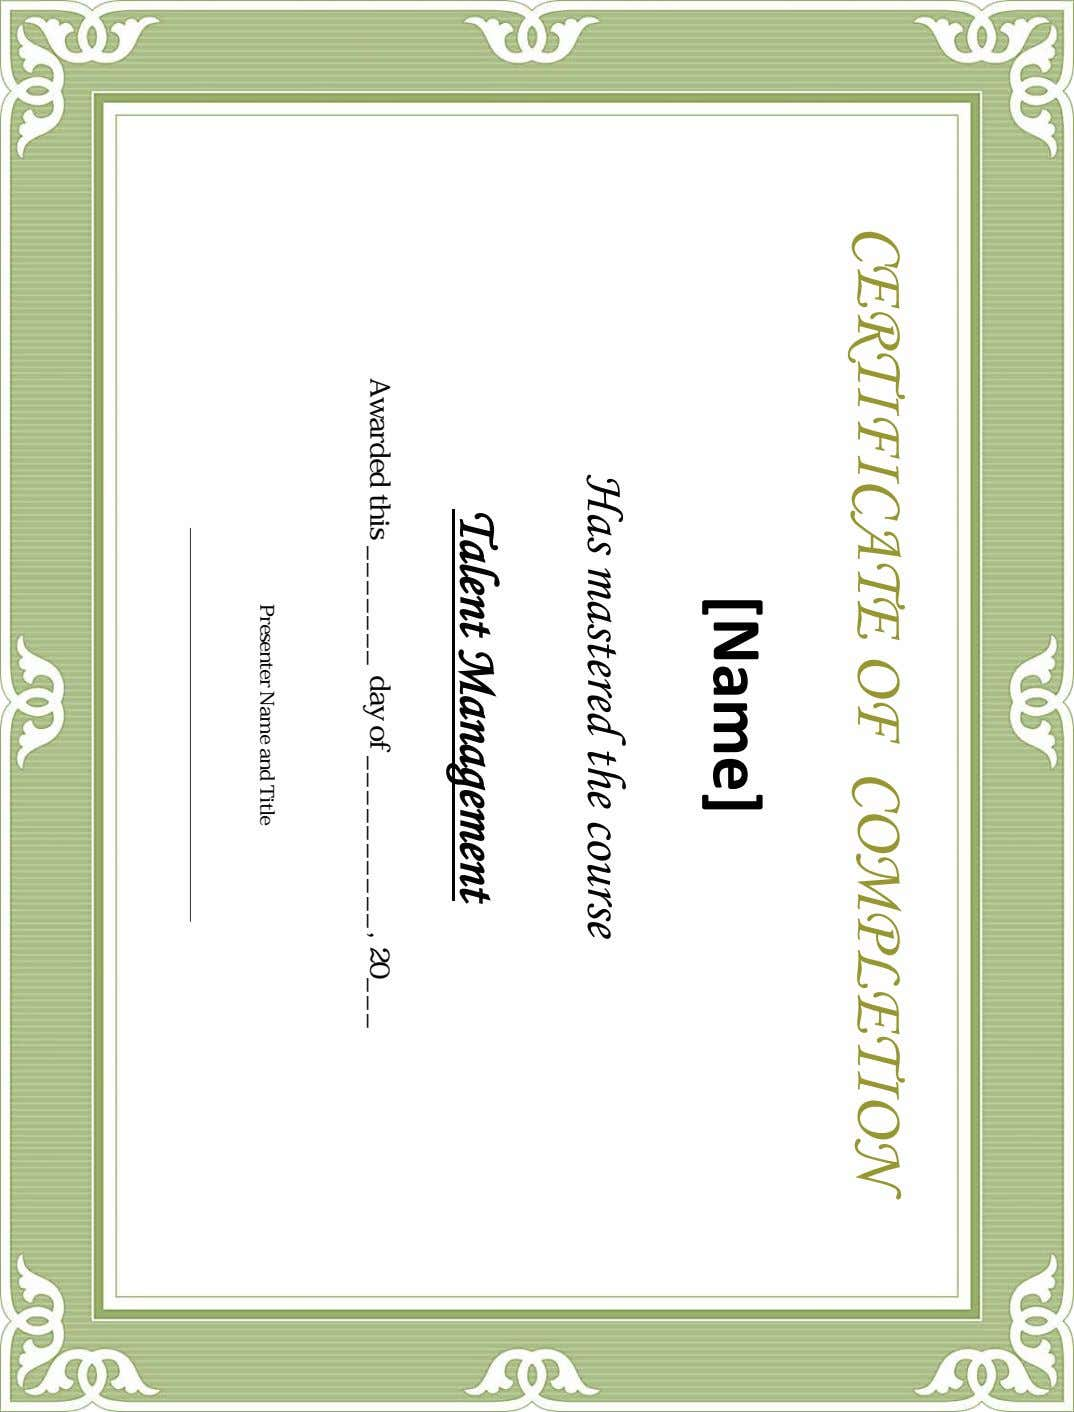 CERTIFICATE OF COMPLETION [Name] , Has mastered the course Talent Management Awarded this day of